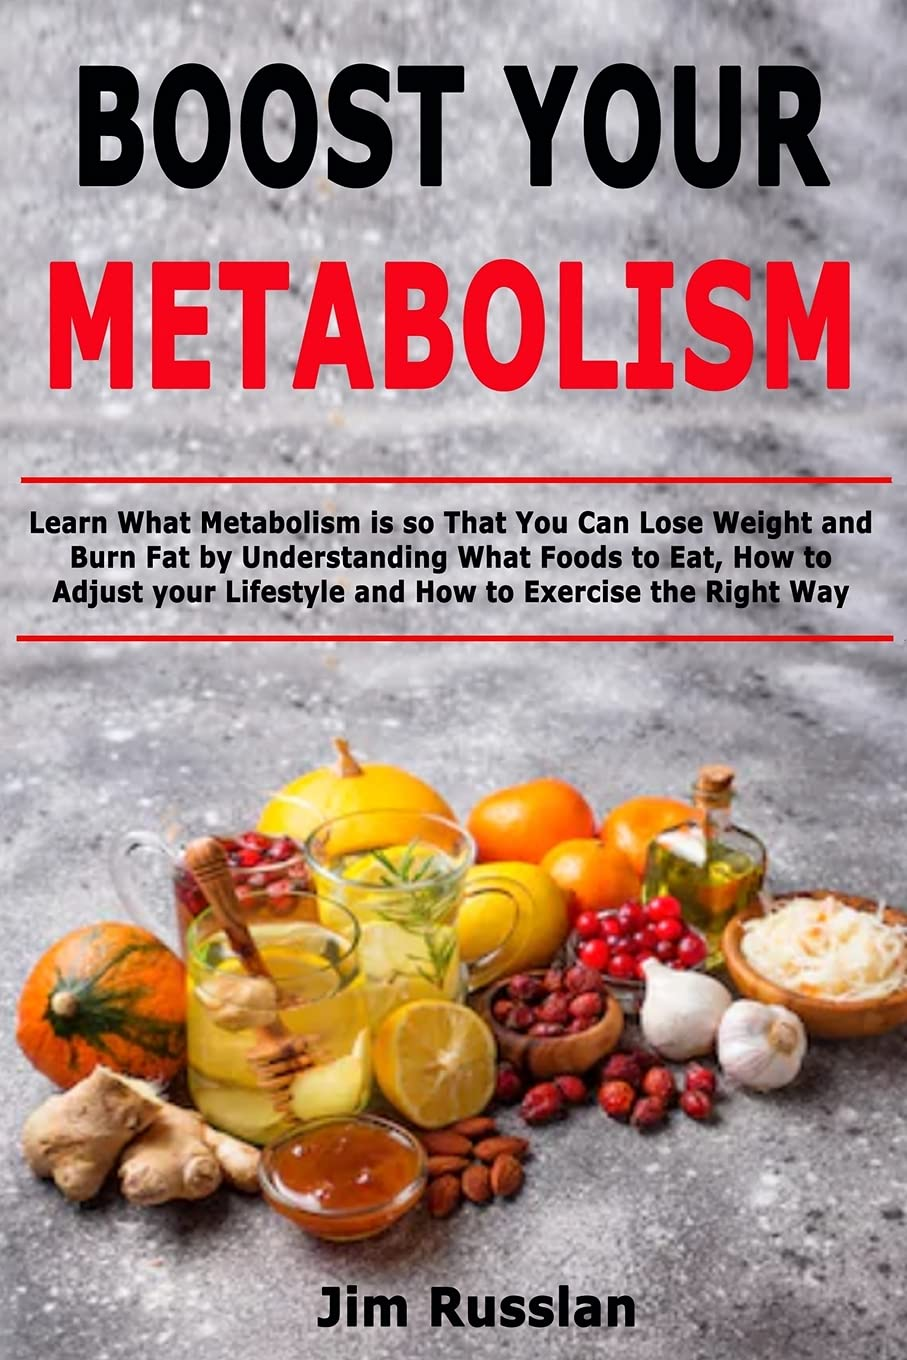 Boost Your Metabolism: Learn What Metabolism is so That You Can